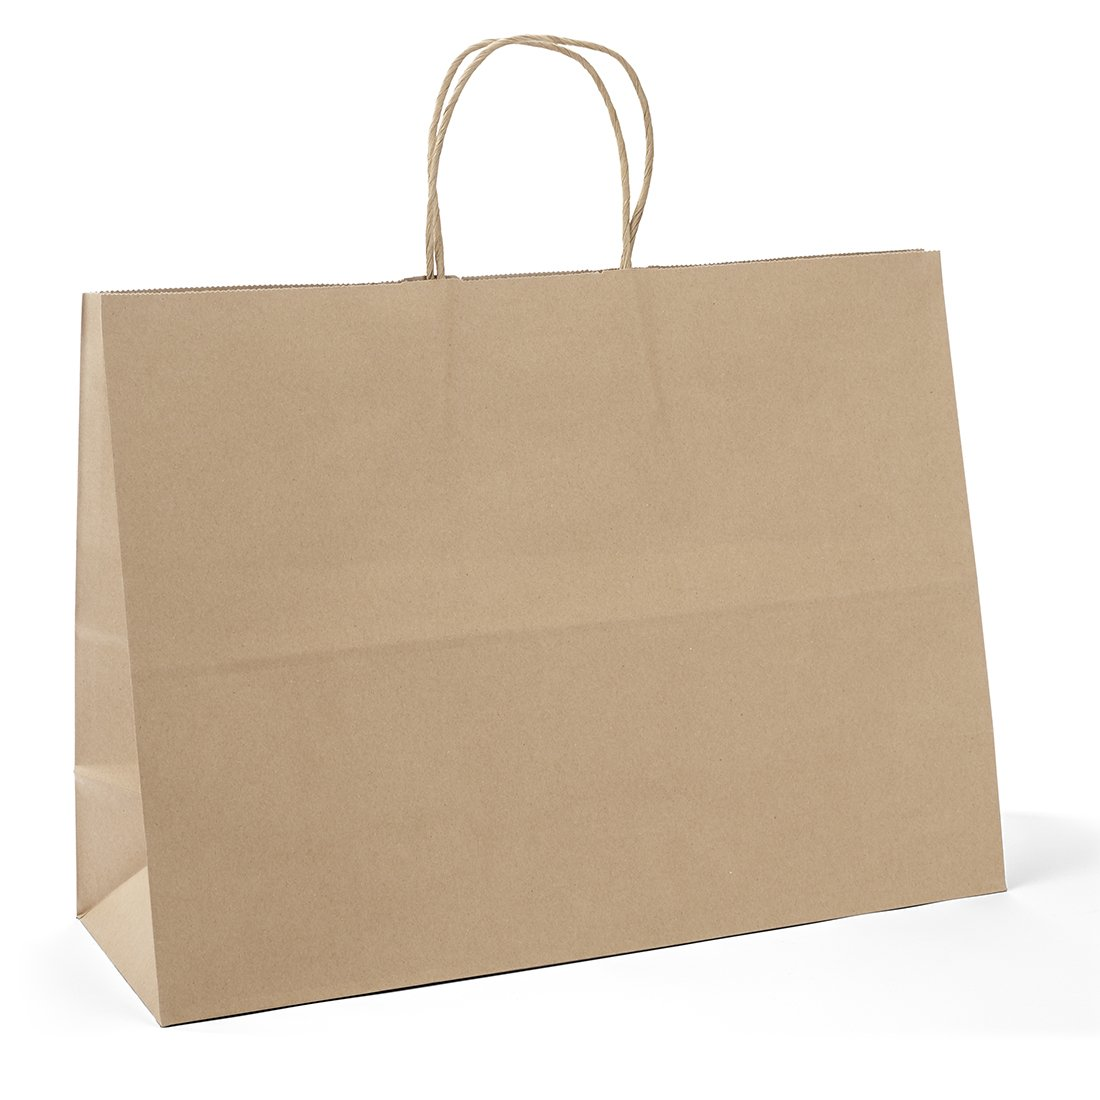 GSSUSA Halulu 100pcs 16x6x12 Inches Kraft Paper Bags Shopping Bag Gift Bags (Brown)